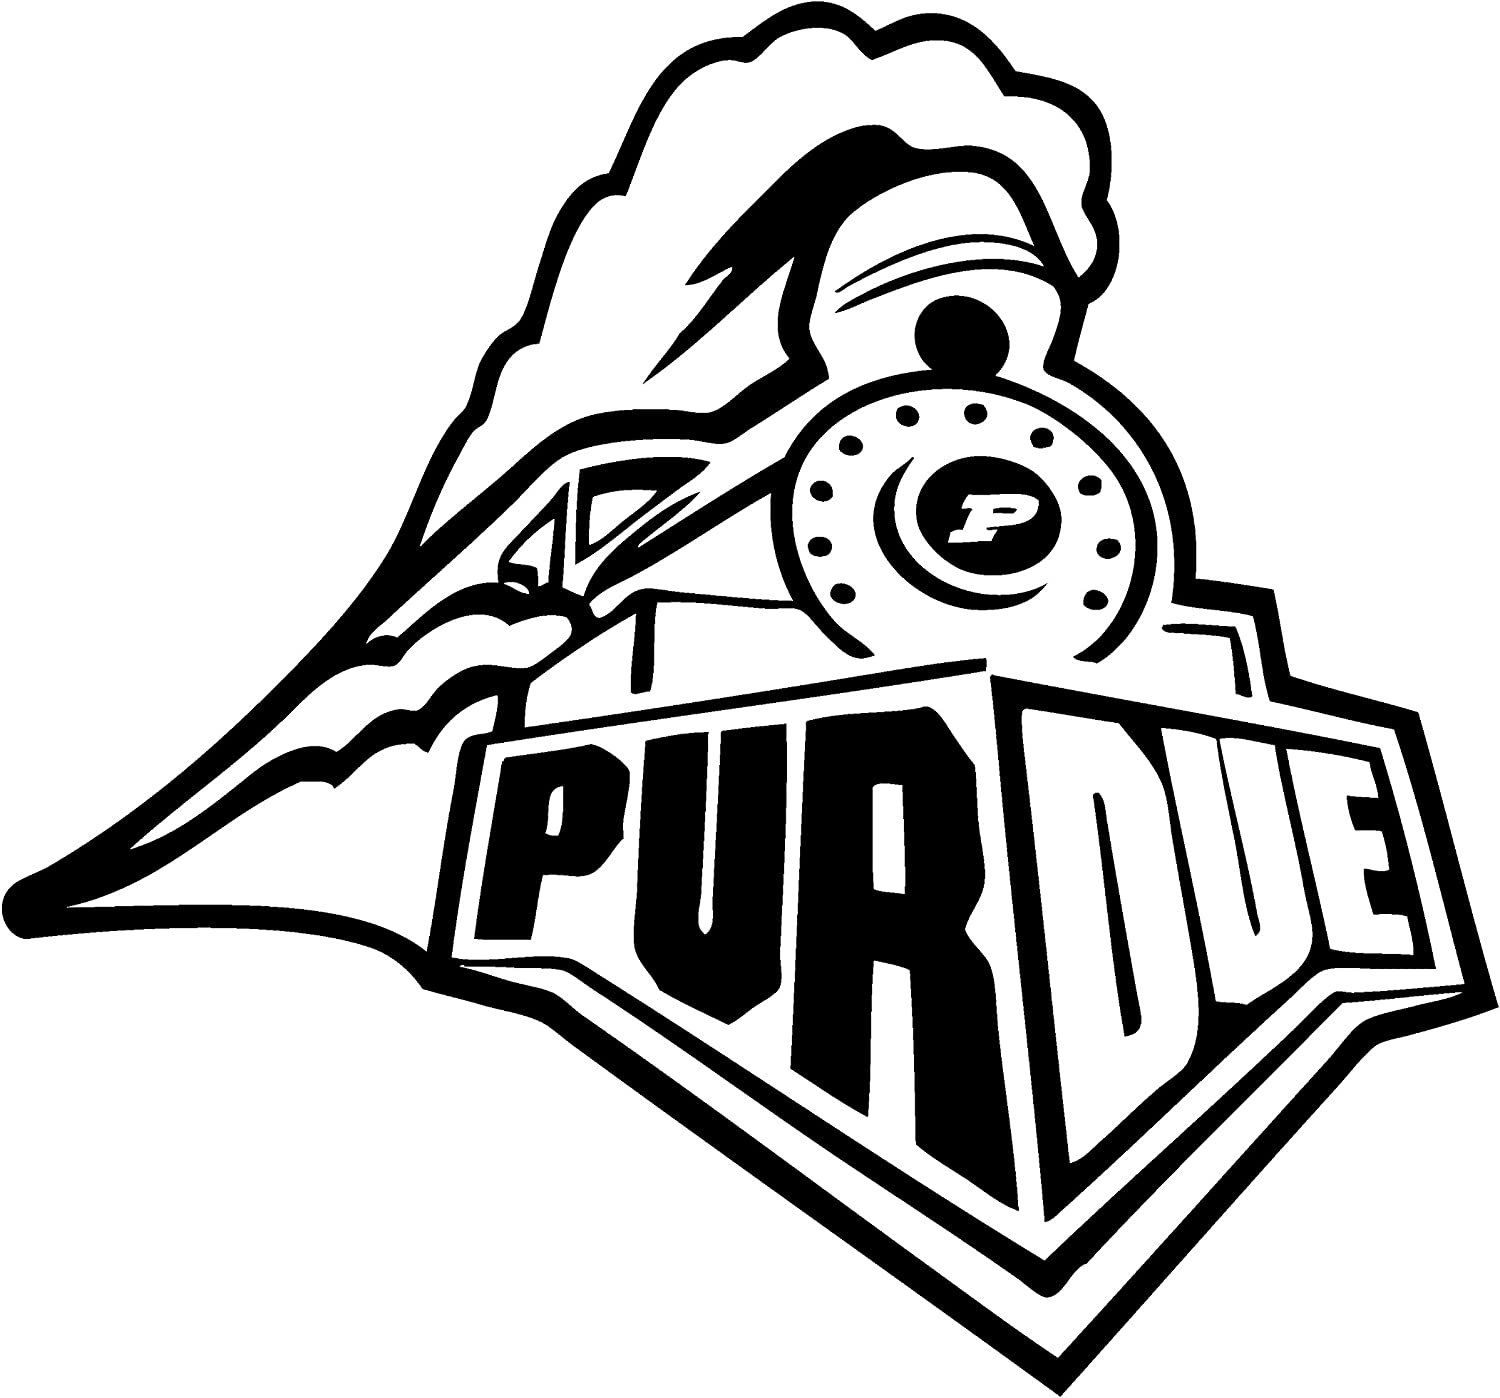 TDT Printing & Custom Decals Purdue Boilermakers Vinyl Decal Sticker for Car or Truck Windows, Laptops etc.